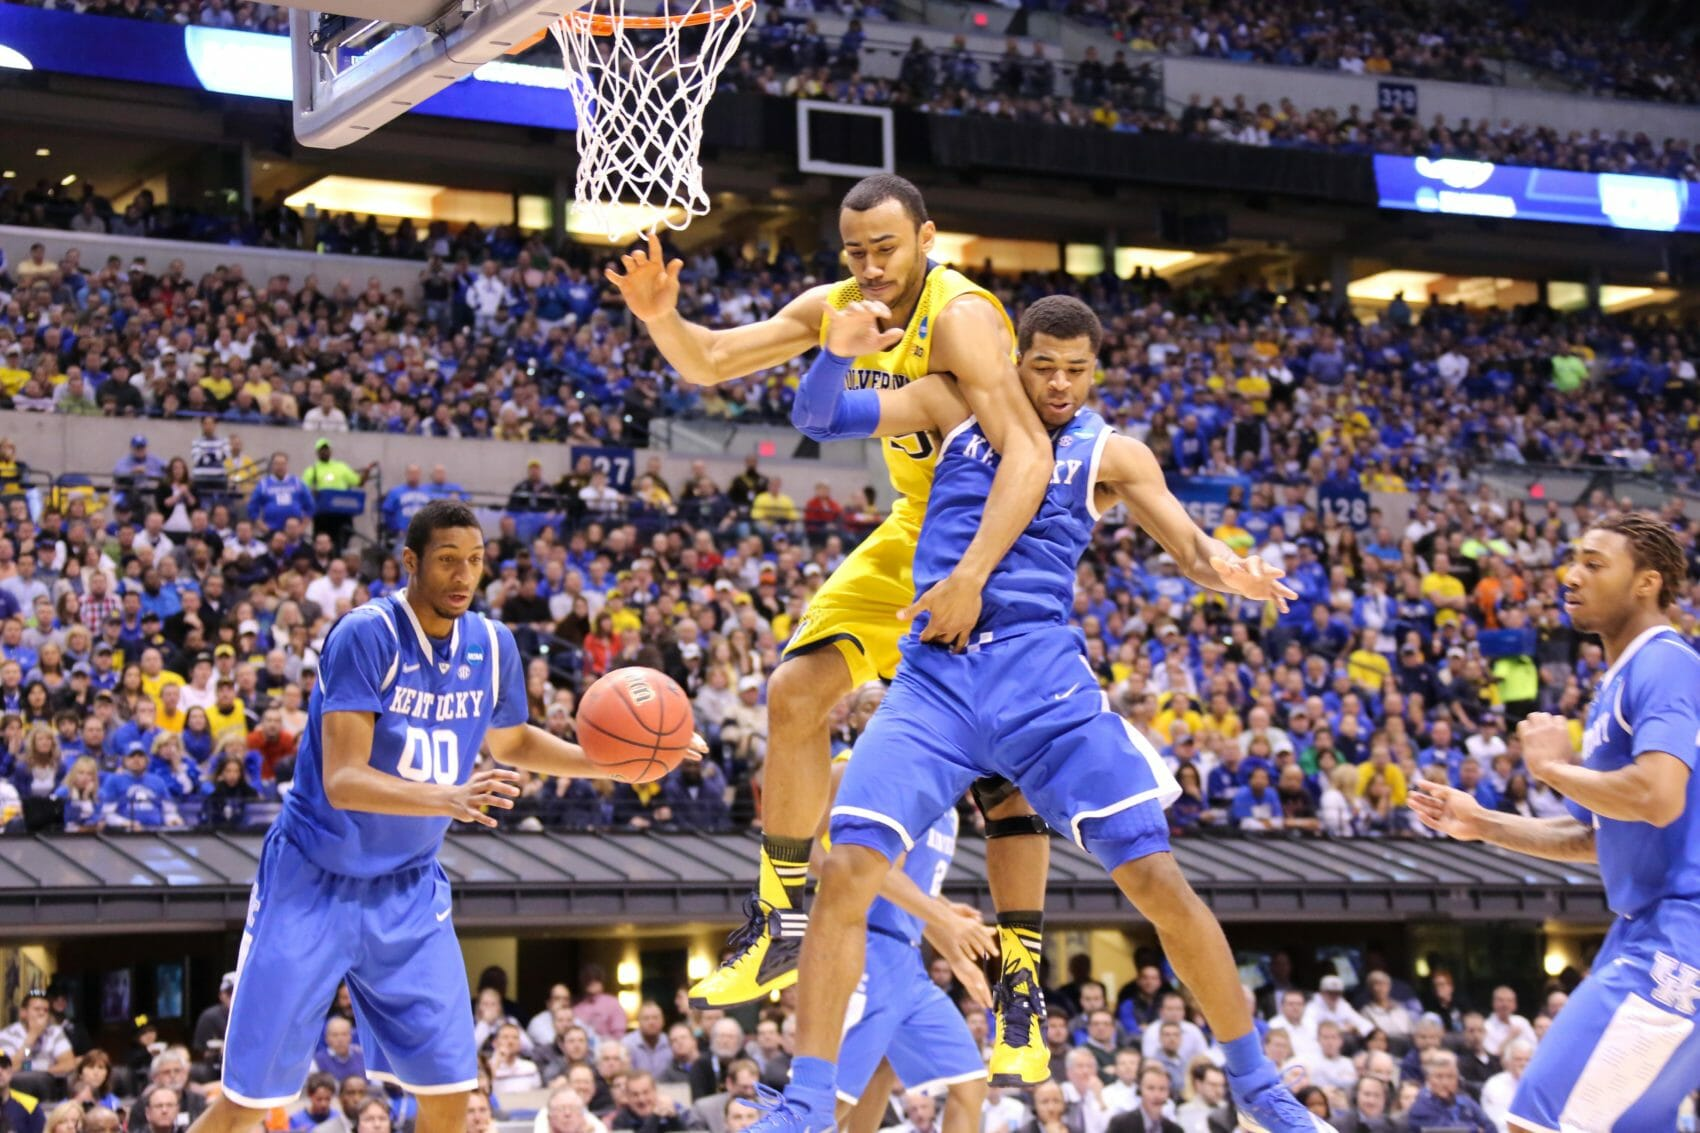 Kentucky 75, Michigan 72-31